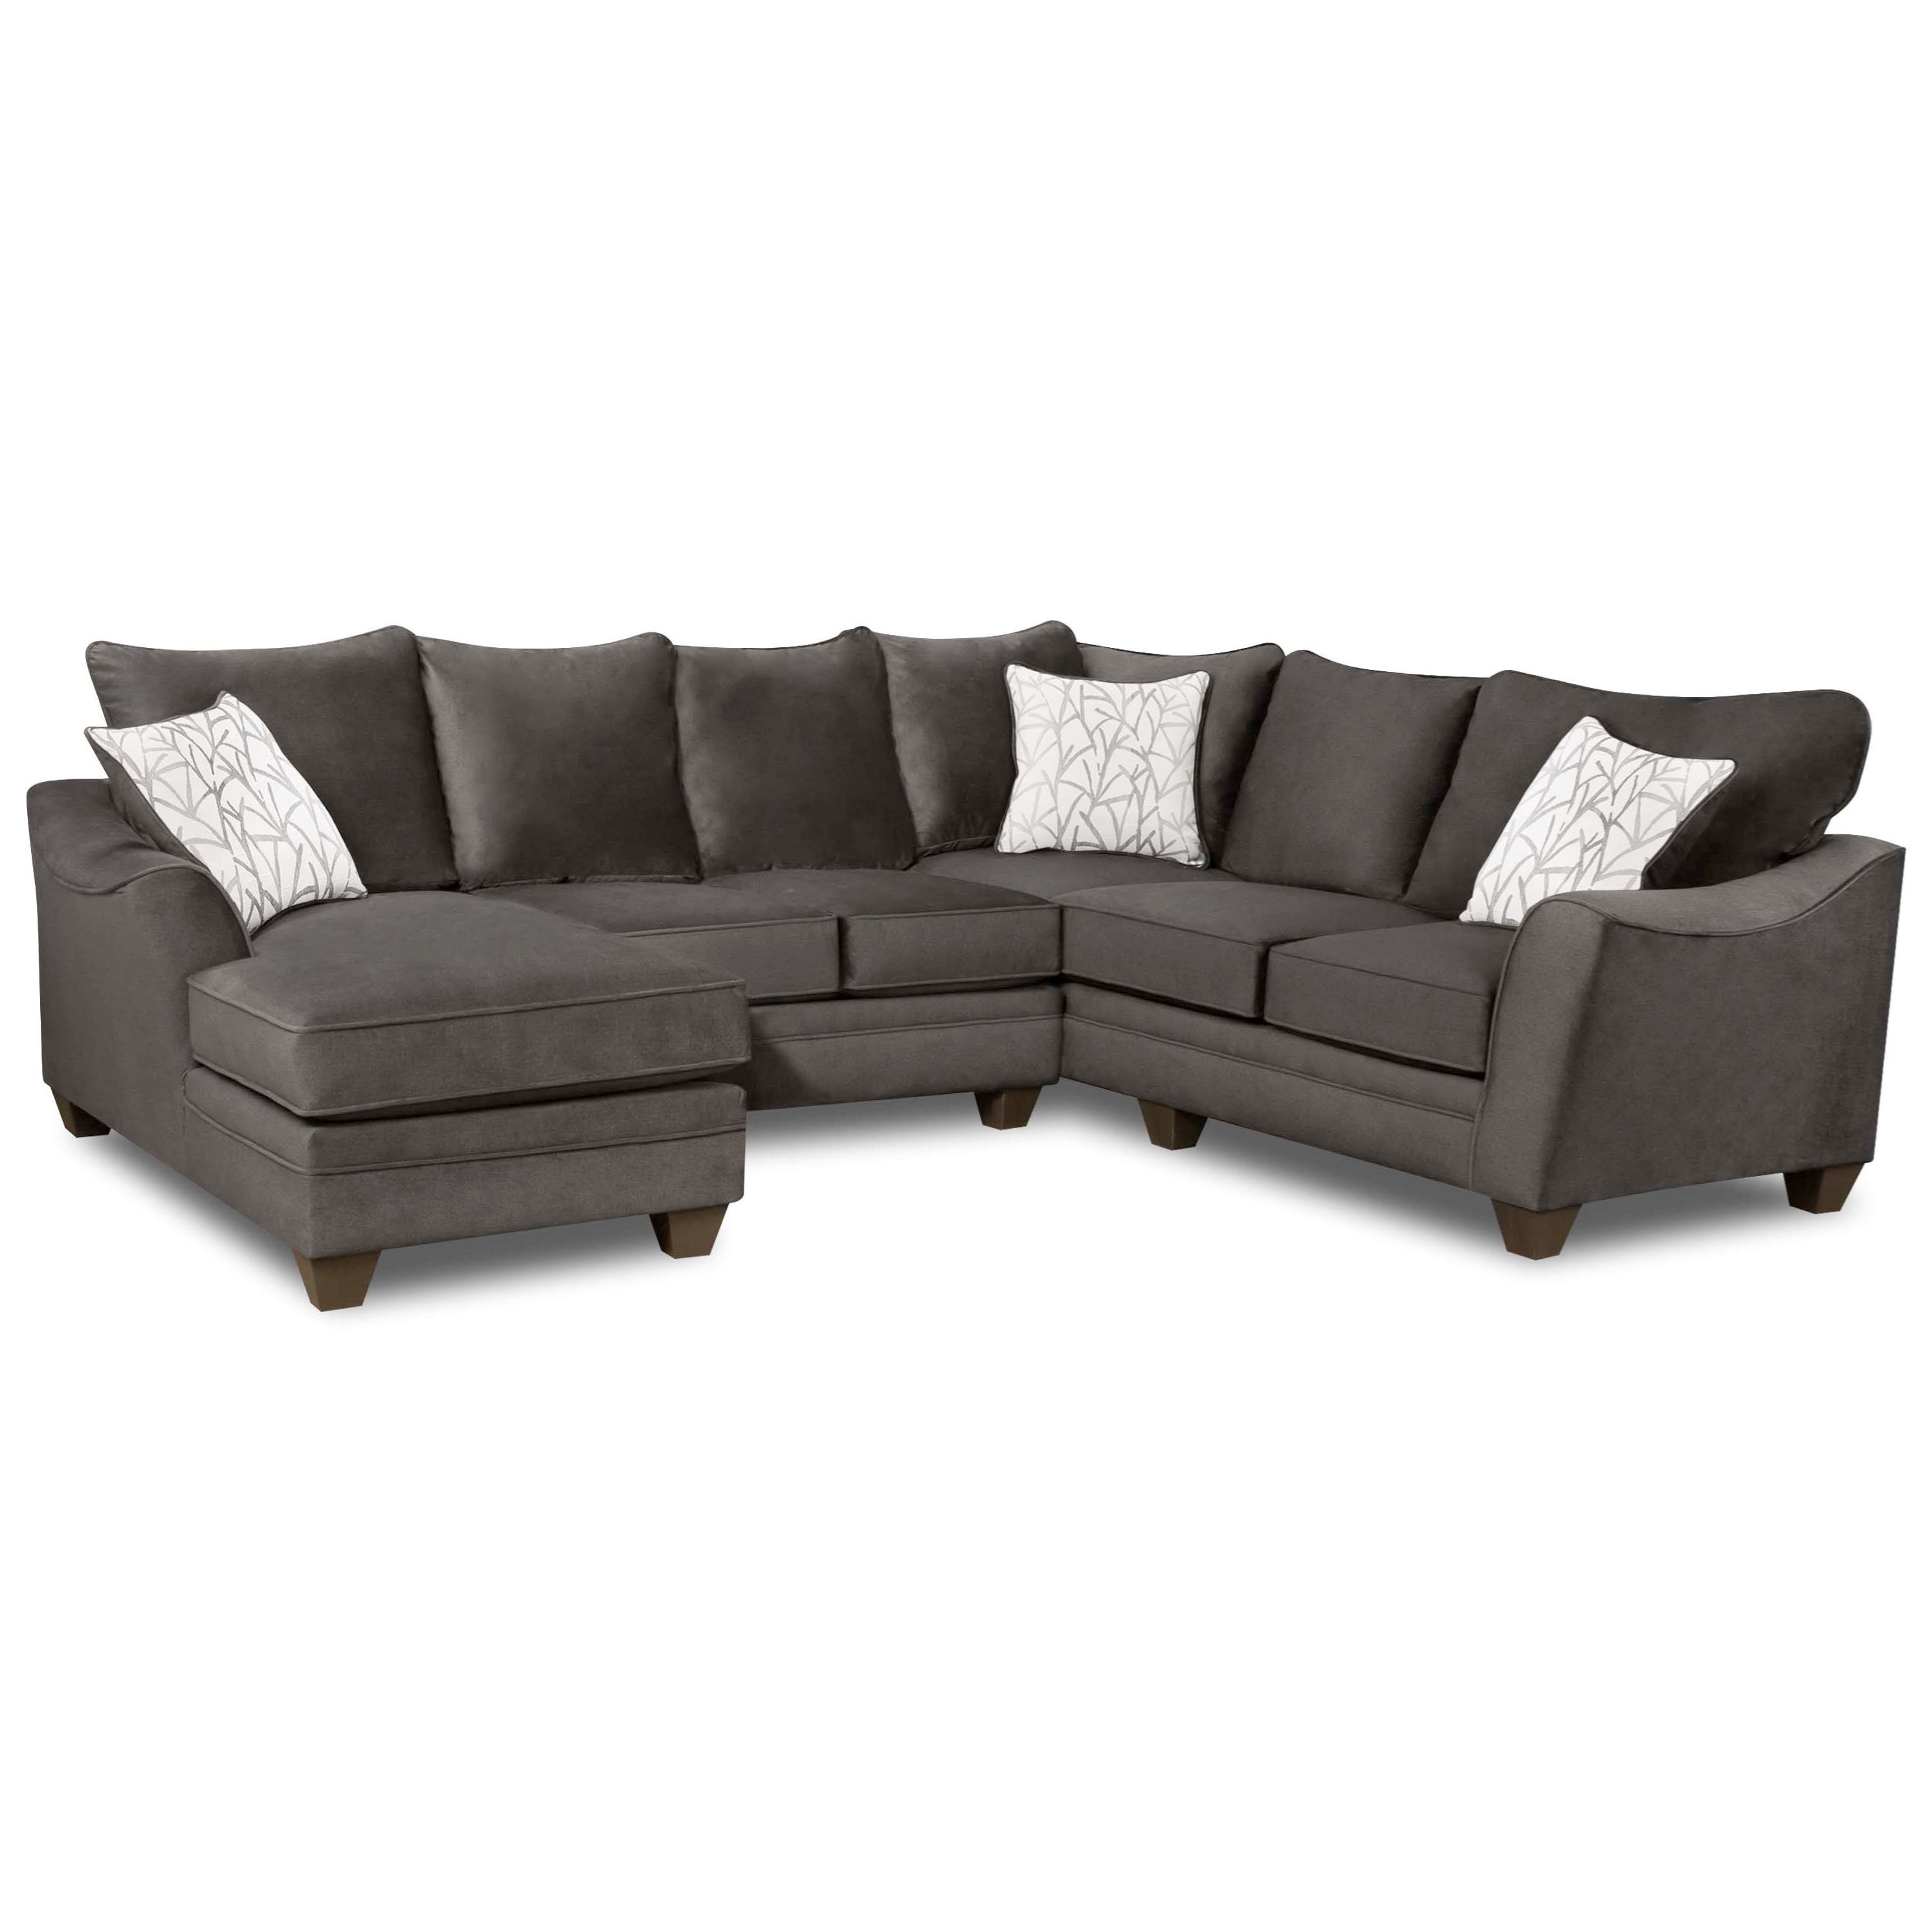 American Furniture 3810 Sectional Sofa with 5 Seats - Item Number: 3812+22+40-4040